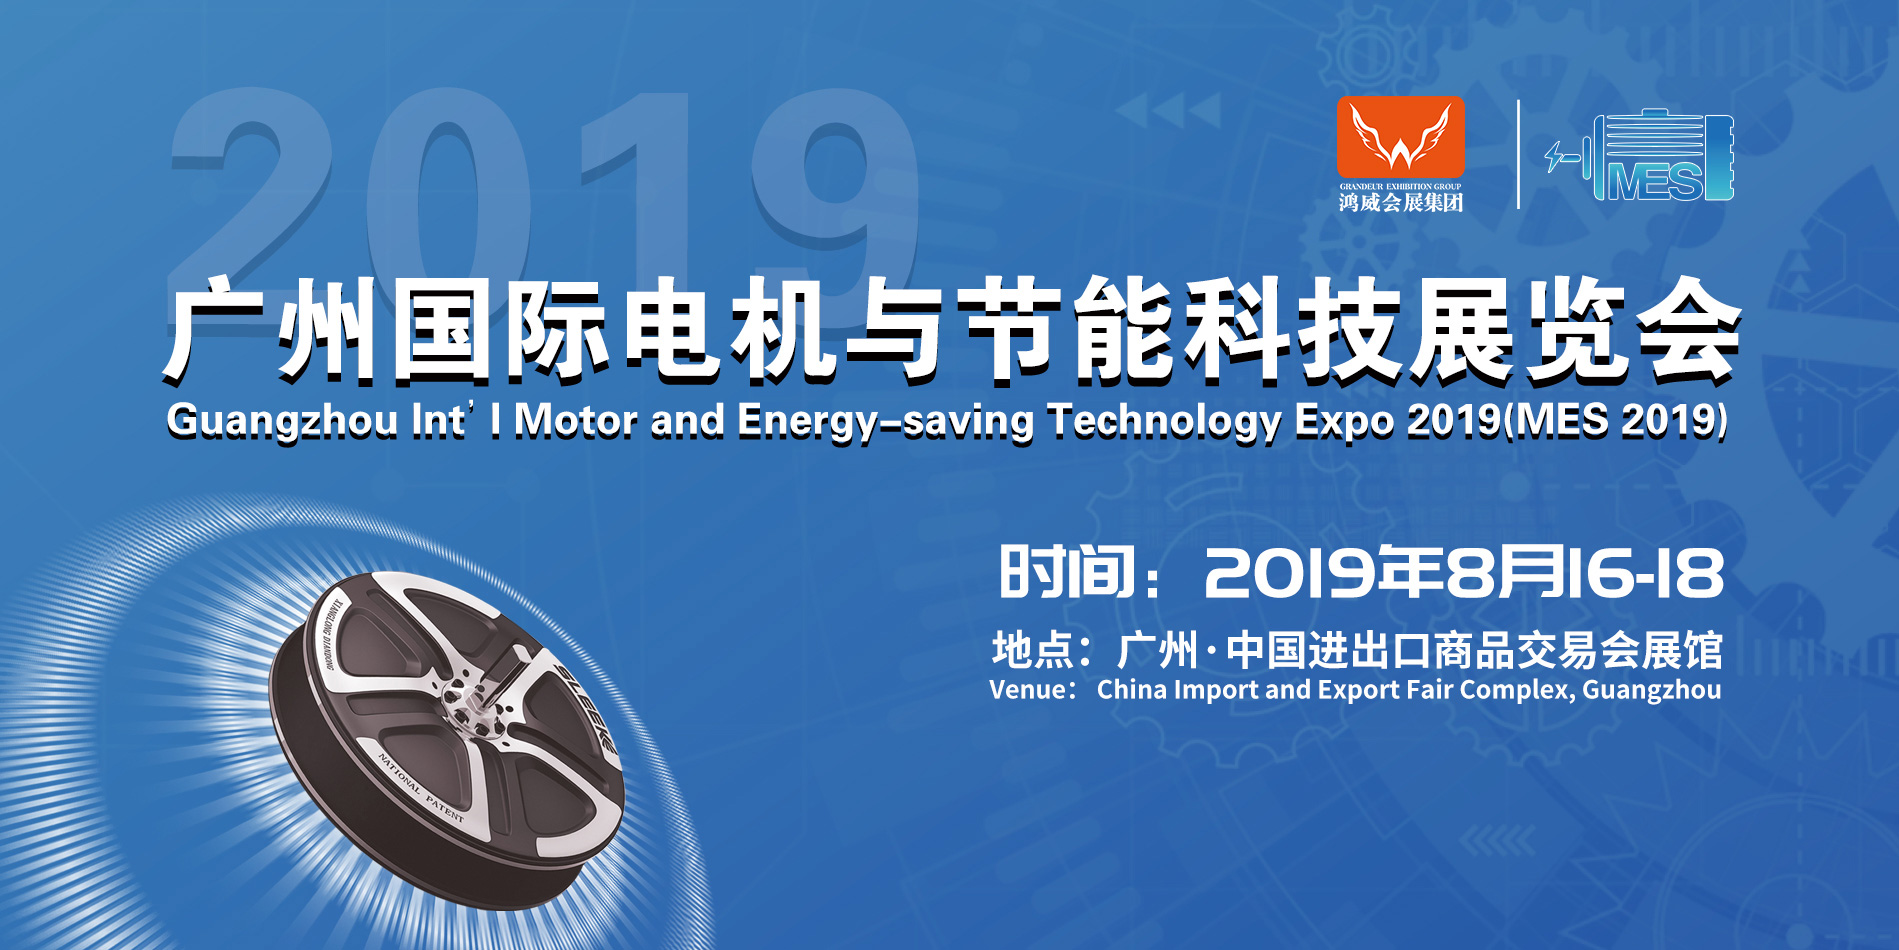 NICHIBO DC MOTOR Guangzhou Int'l Motor and Energy-saving Technology Expo (MES 2019) 参加します